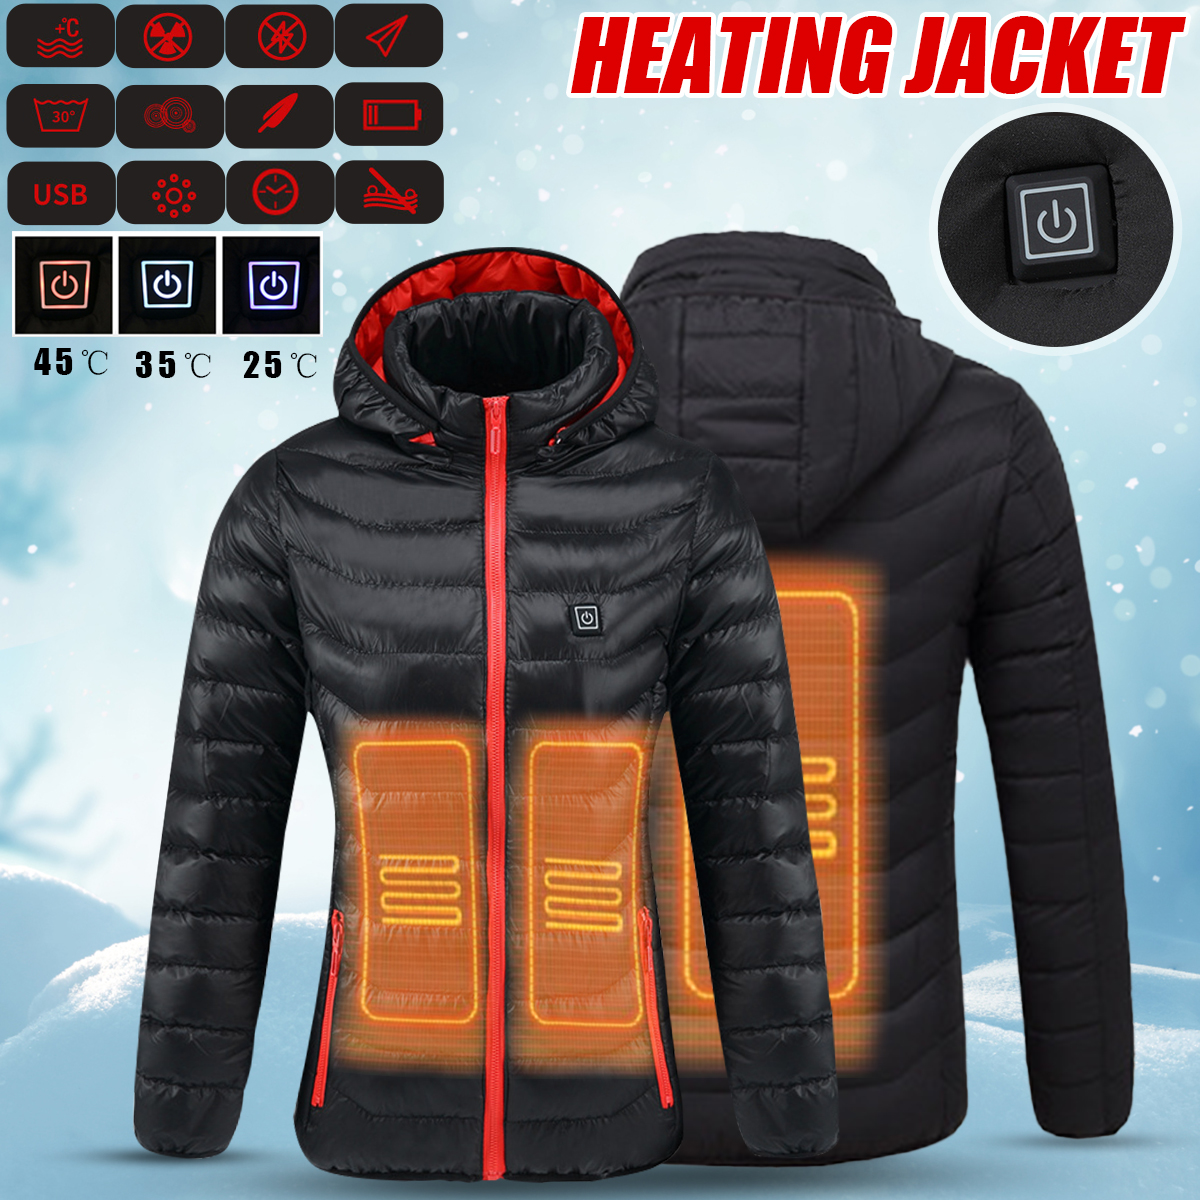 Women Winter Heated Safety Jacket USB Hooded Work Heating Jacket Coats Adjustable Temperature Control Safety Clothing mens winter heated usb charge hooded work jacket coats vest adjustable temperature control safety clothing